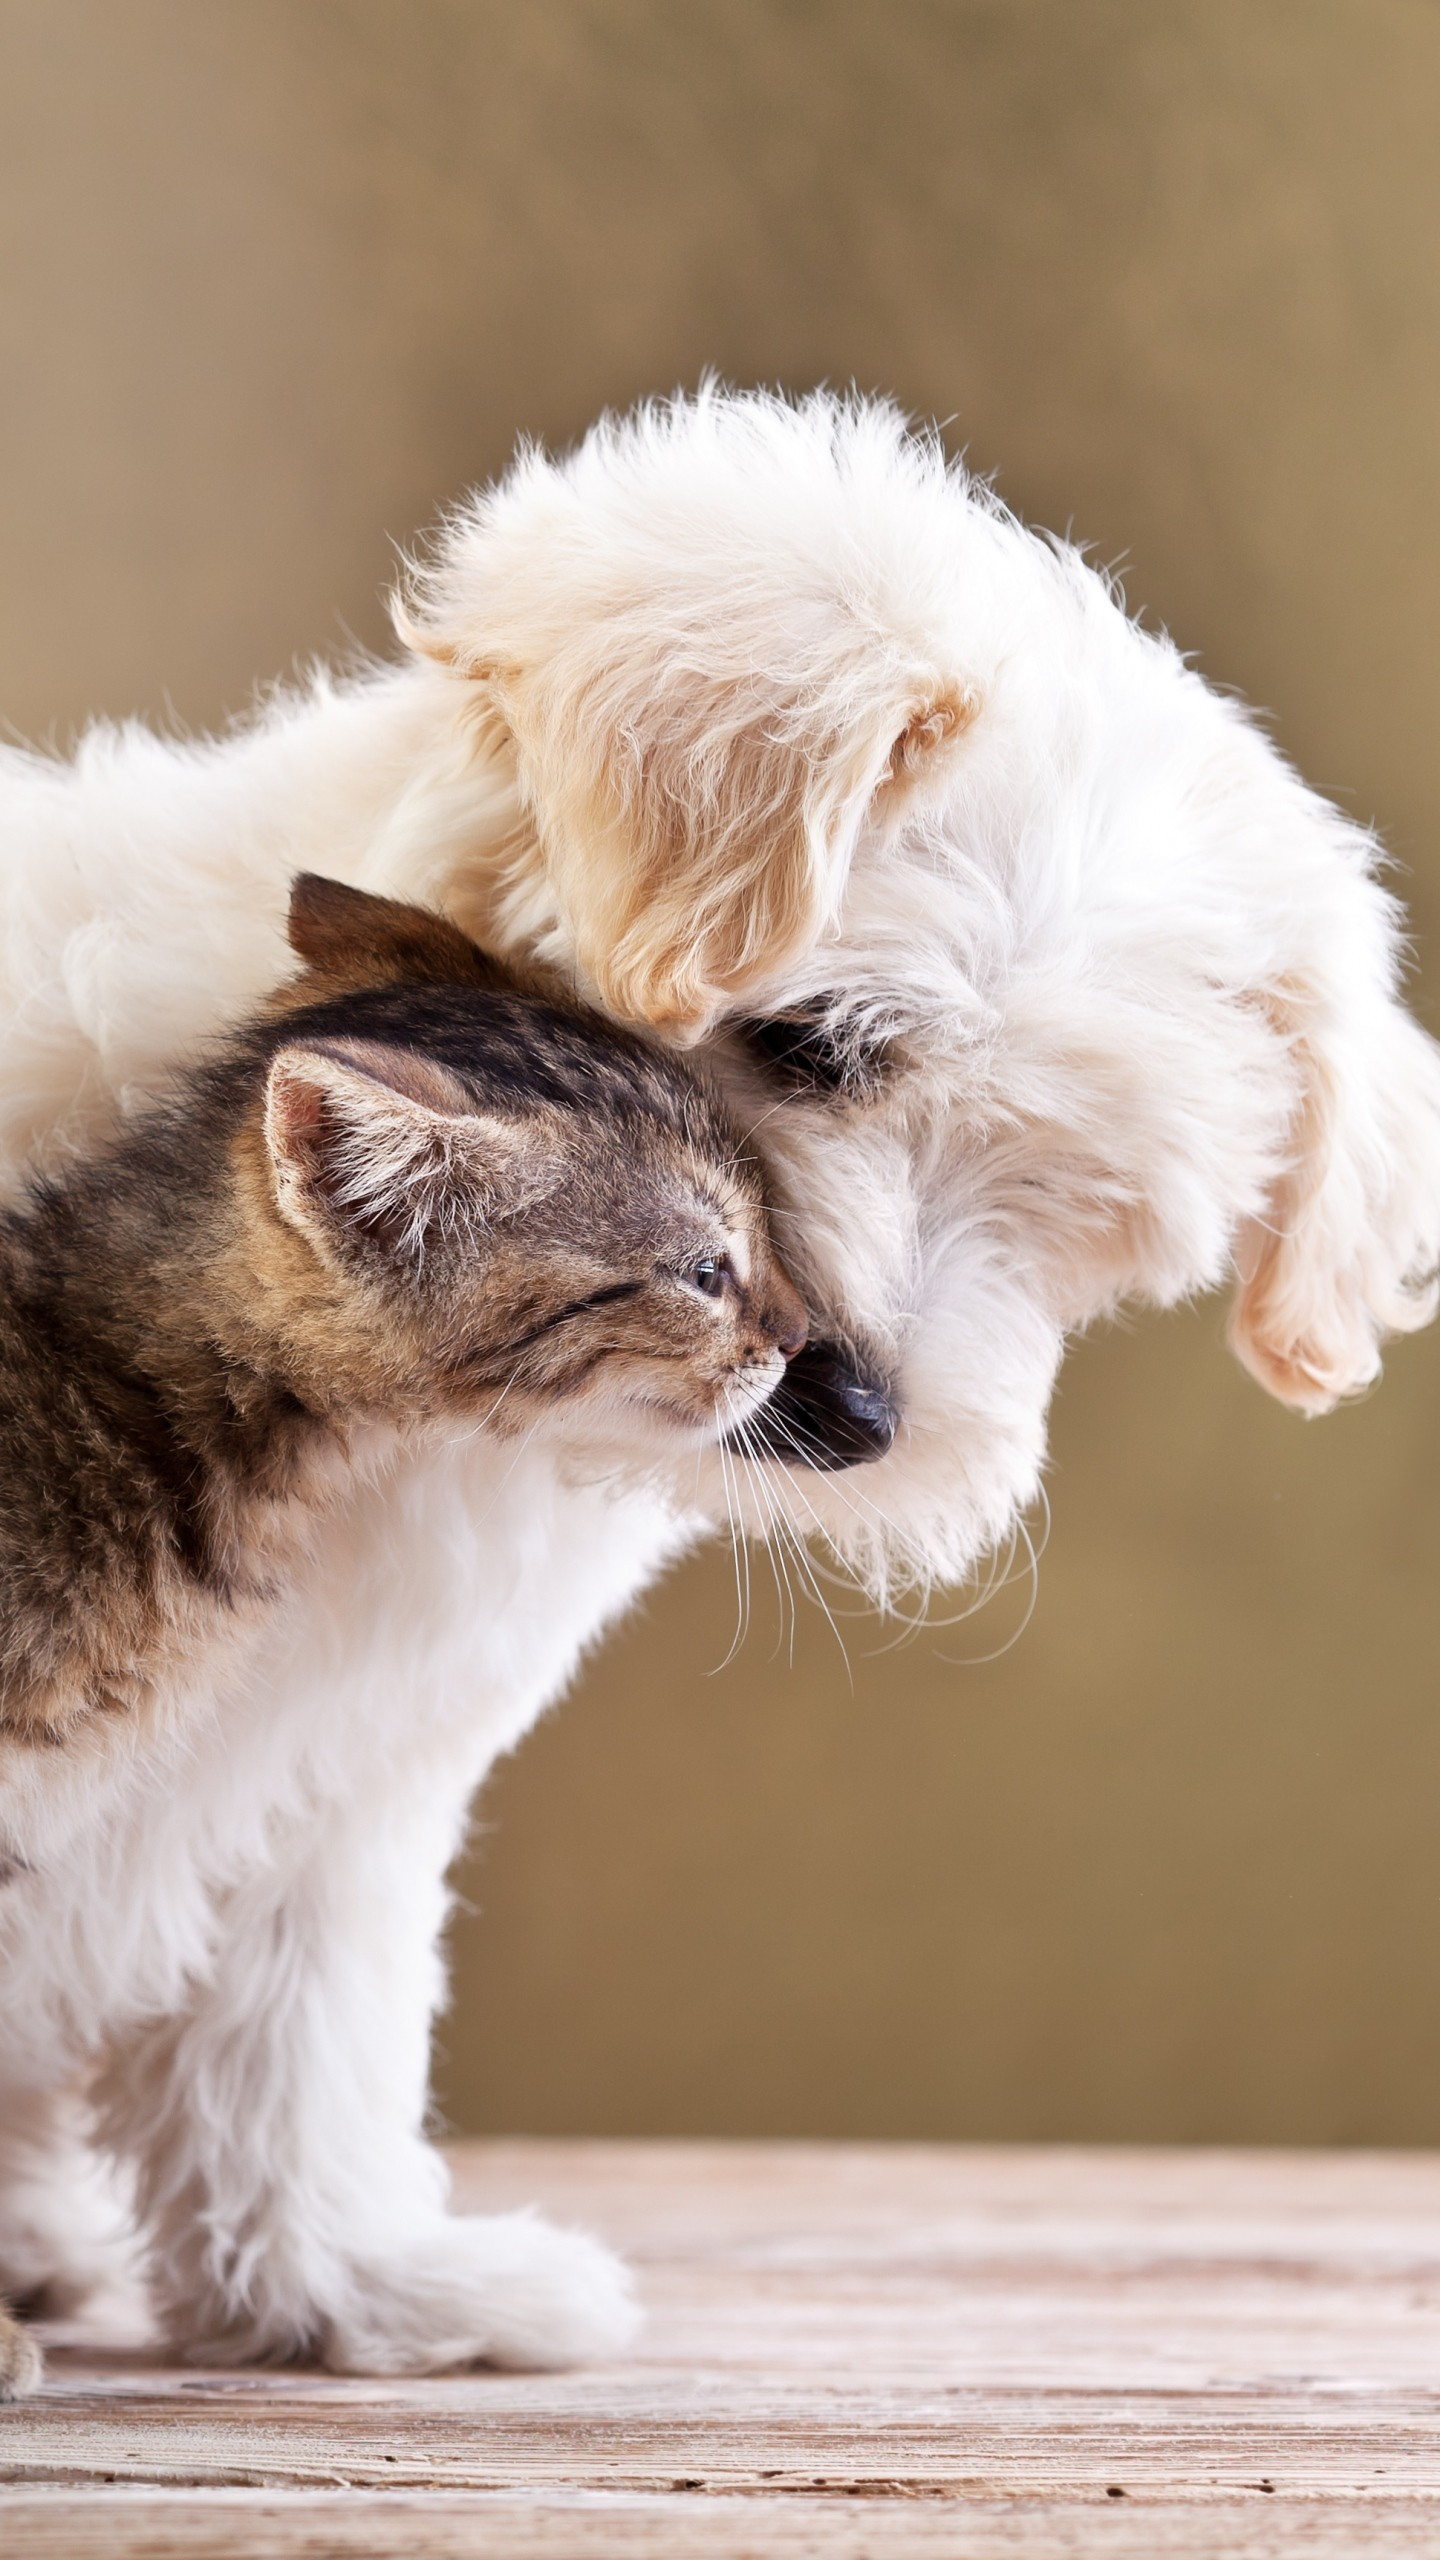 55+ Cute Puppy and Kitten